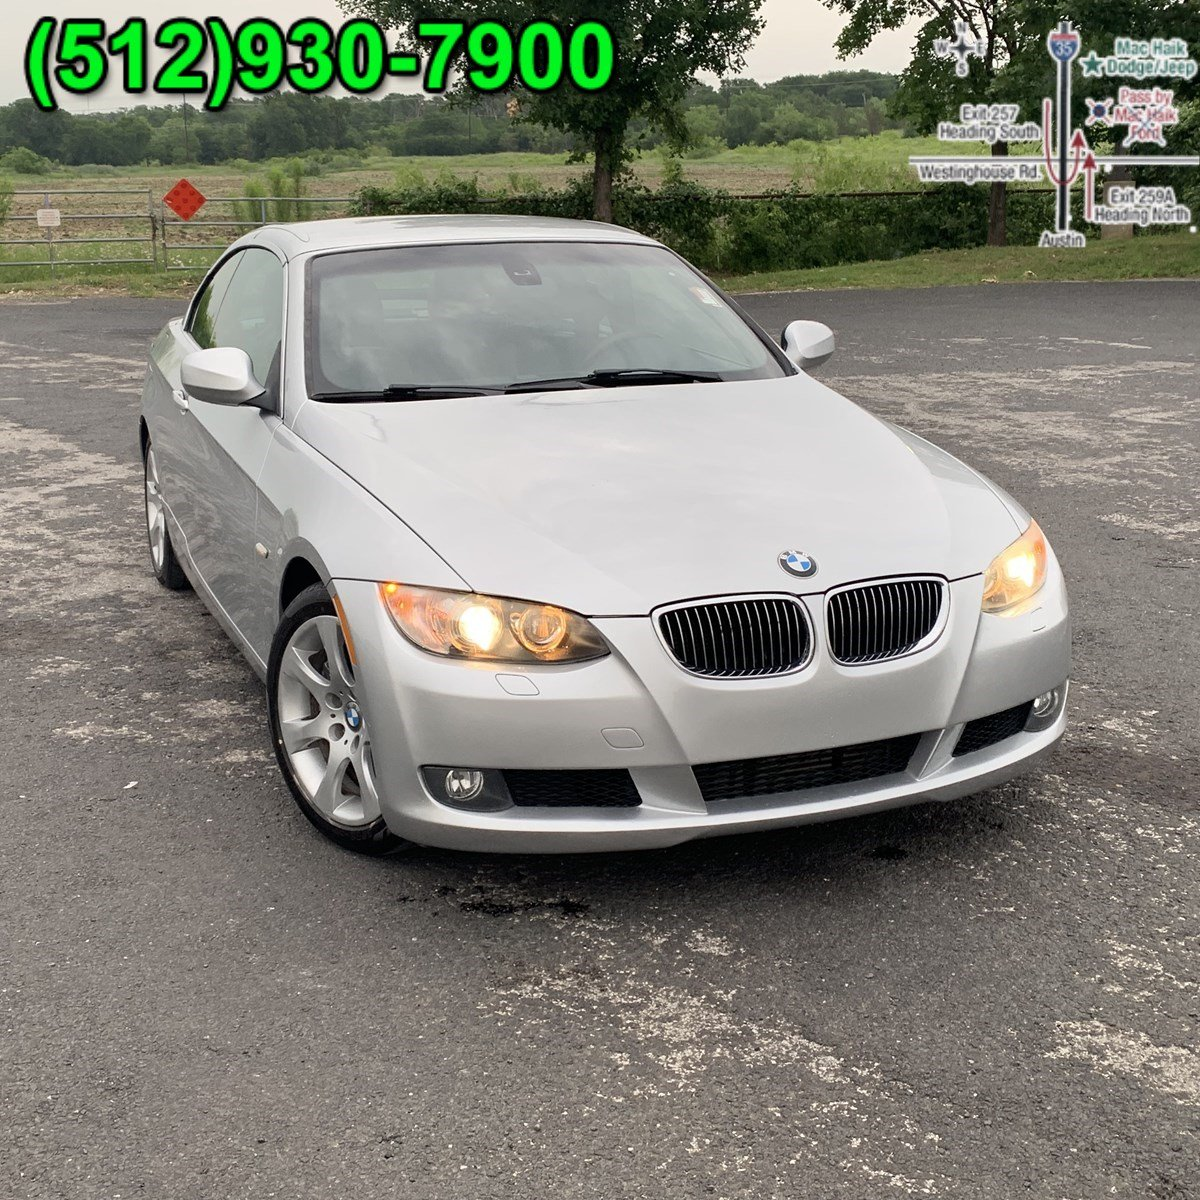 Bmw 335I Convertible >> 2010 Bmw 3 Series 335i Convertible For Sale In Austin Tx B476309